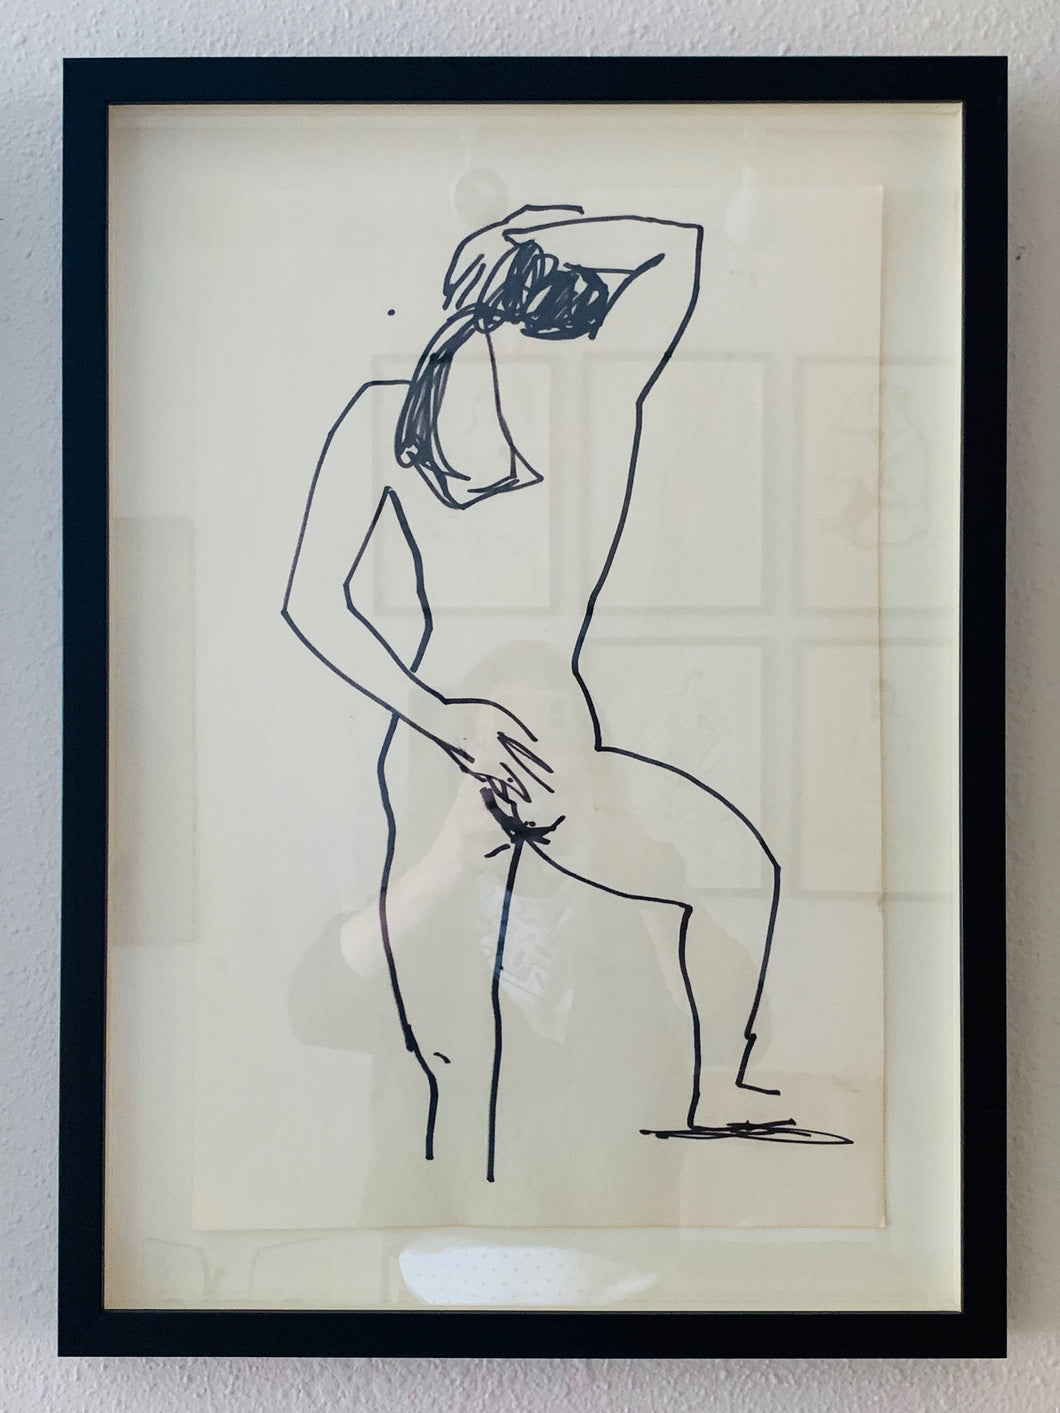 Framed Line Drawing by Serince Bonnist